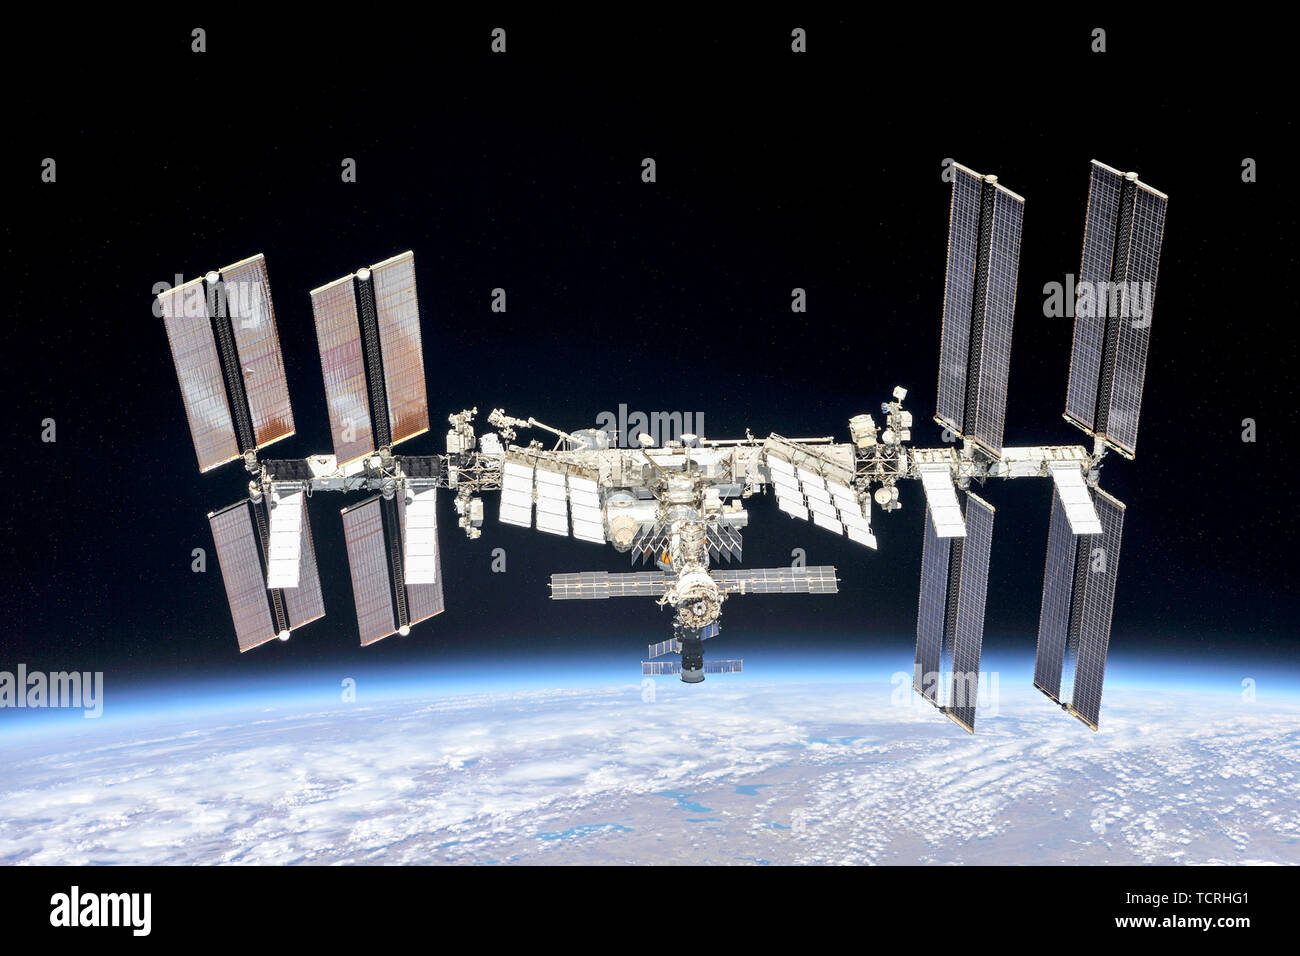 International Space Station, ISS - Stock Image